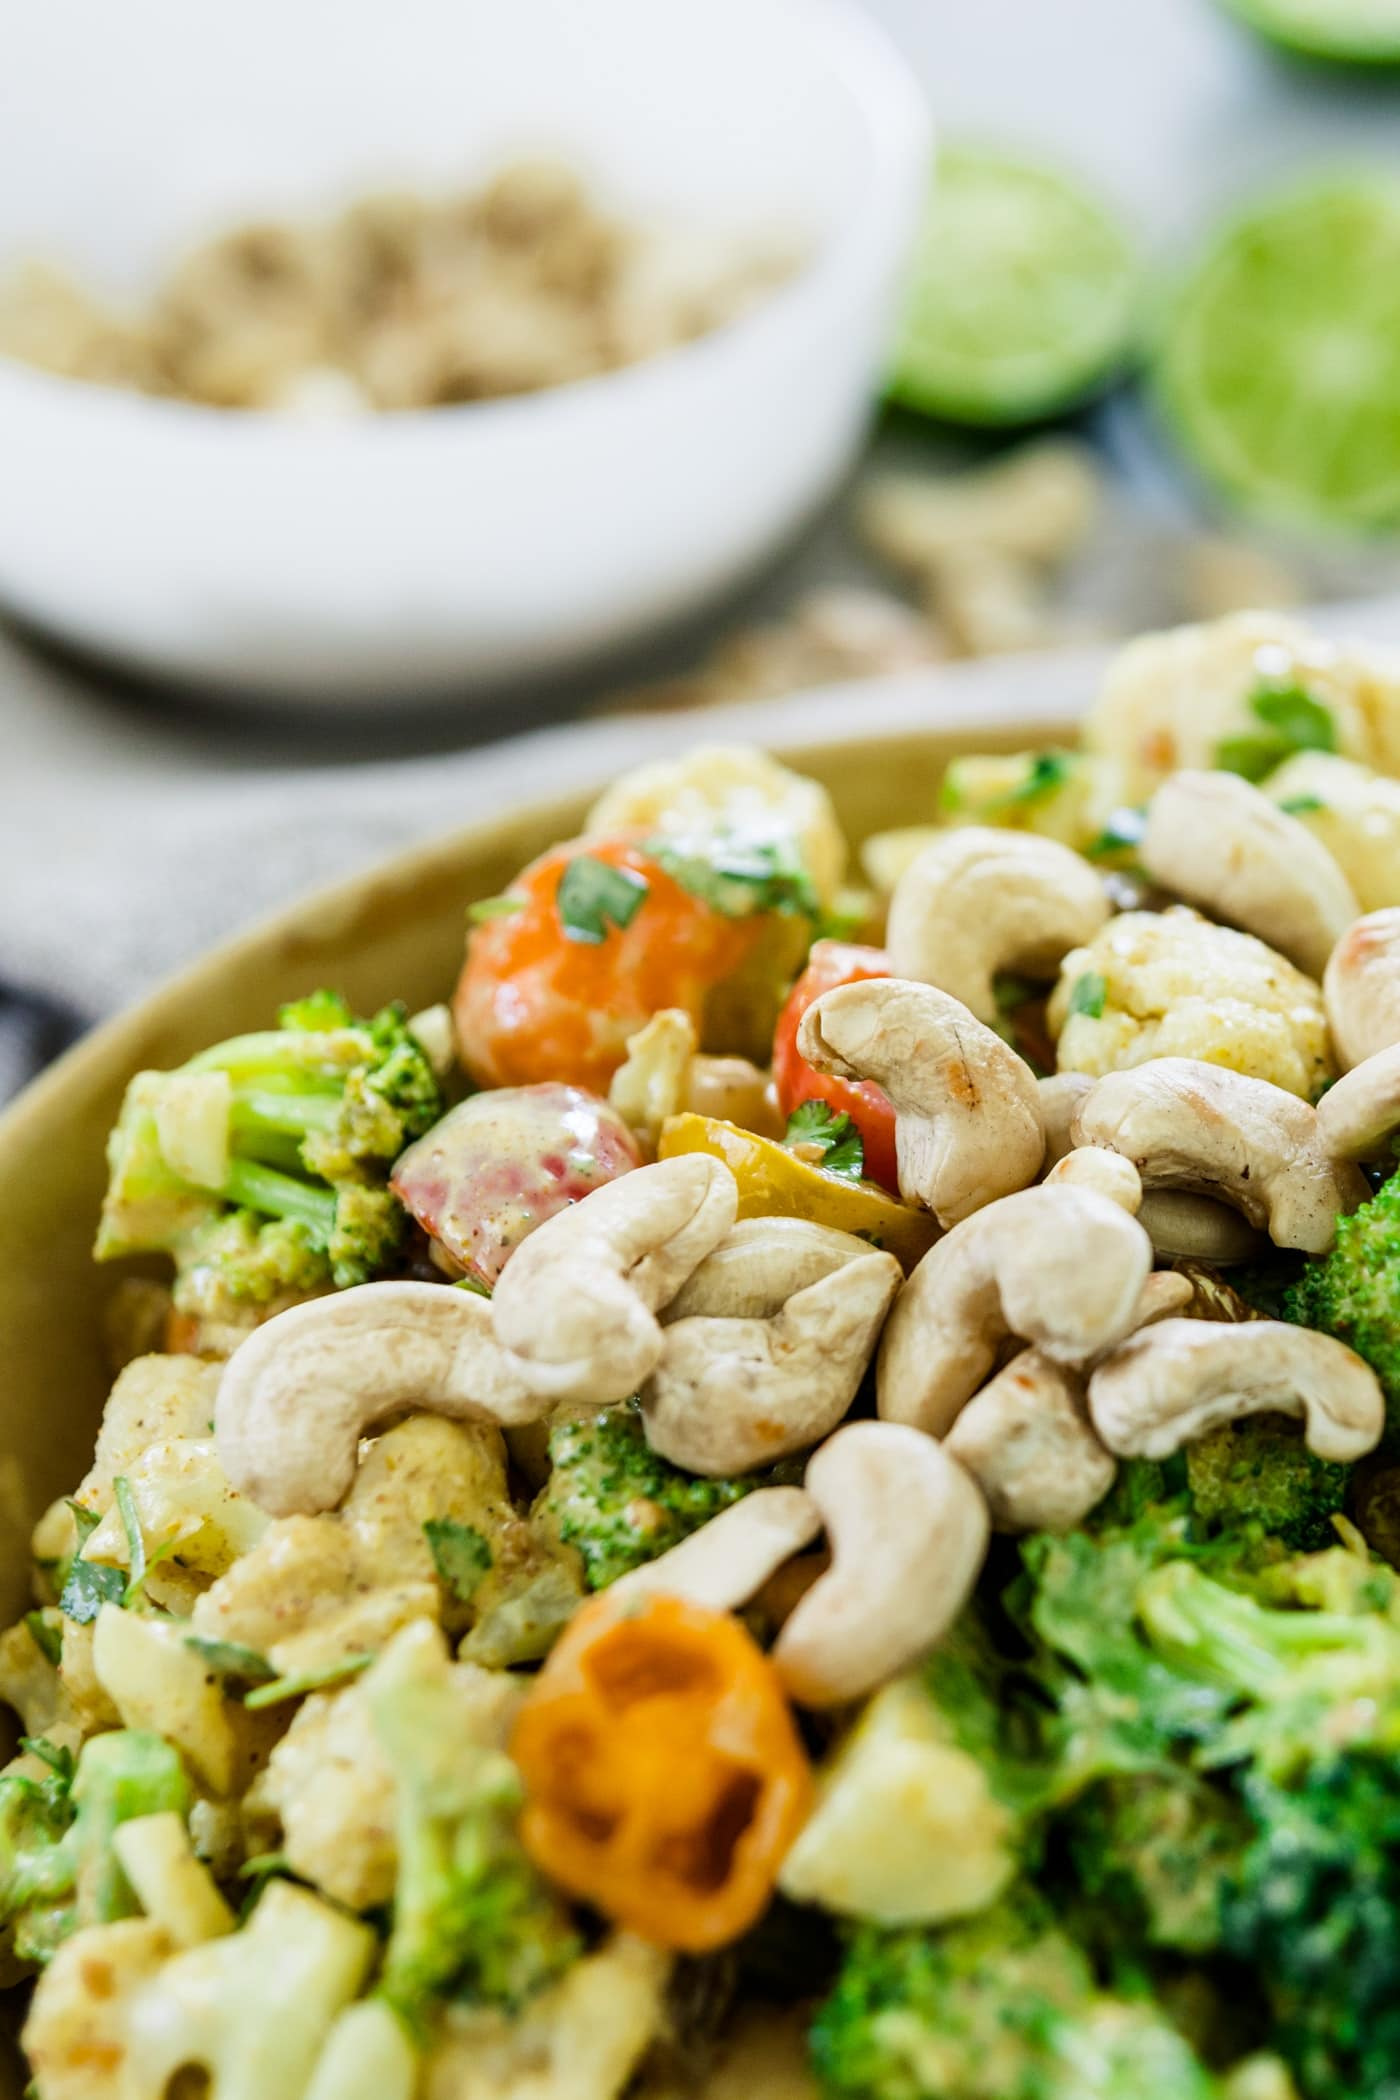 Pieces of broccoli, tomatoes and cauliflower salad in a large yellow bowl sprinkled with cashews with used limes and extra cashews in a bowl in background on a marble surface